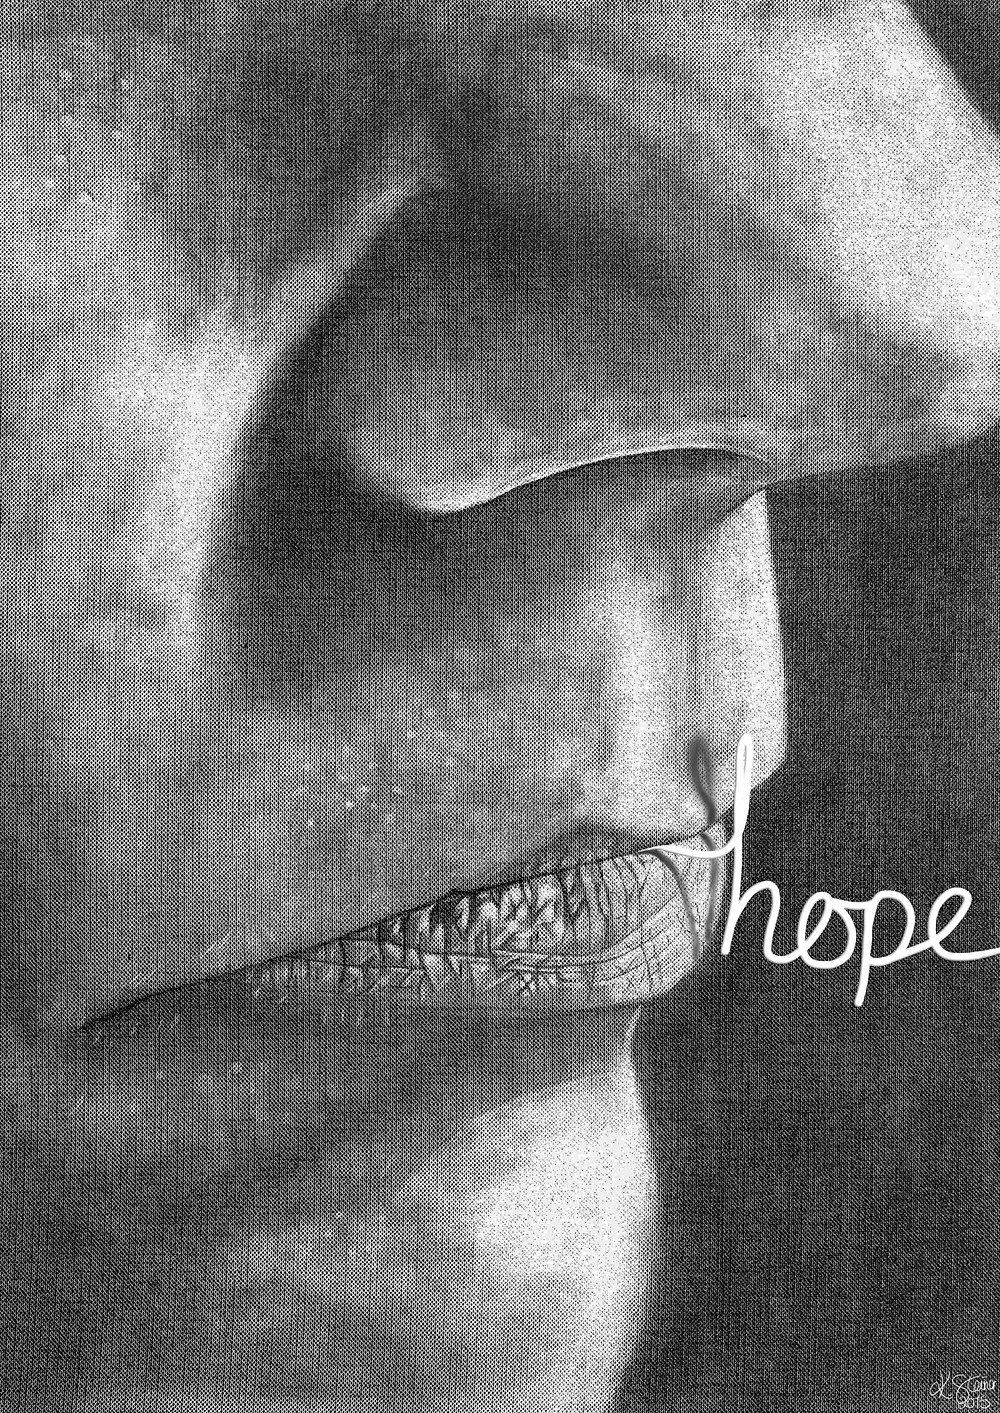 Don't lose hope friends! This too will pass .... Image by yours truly!